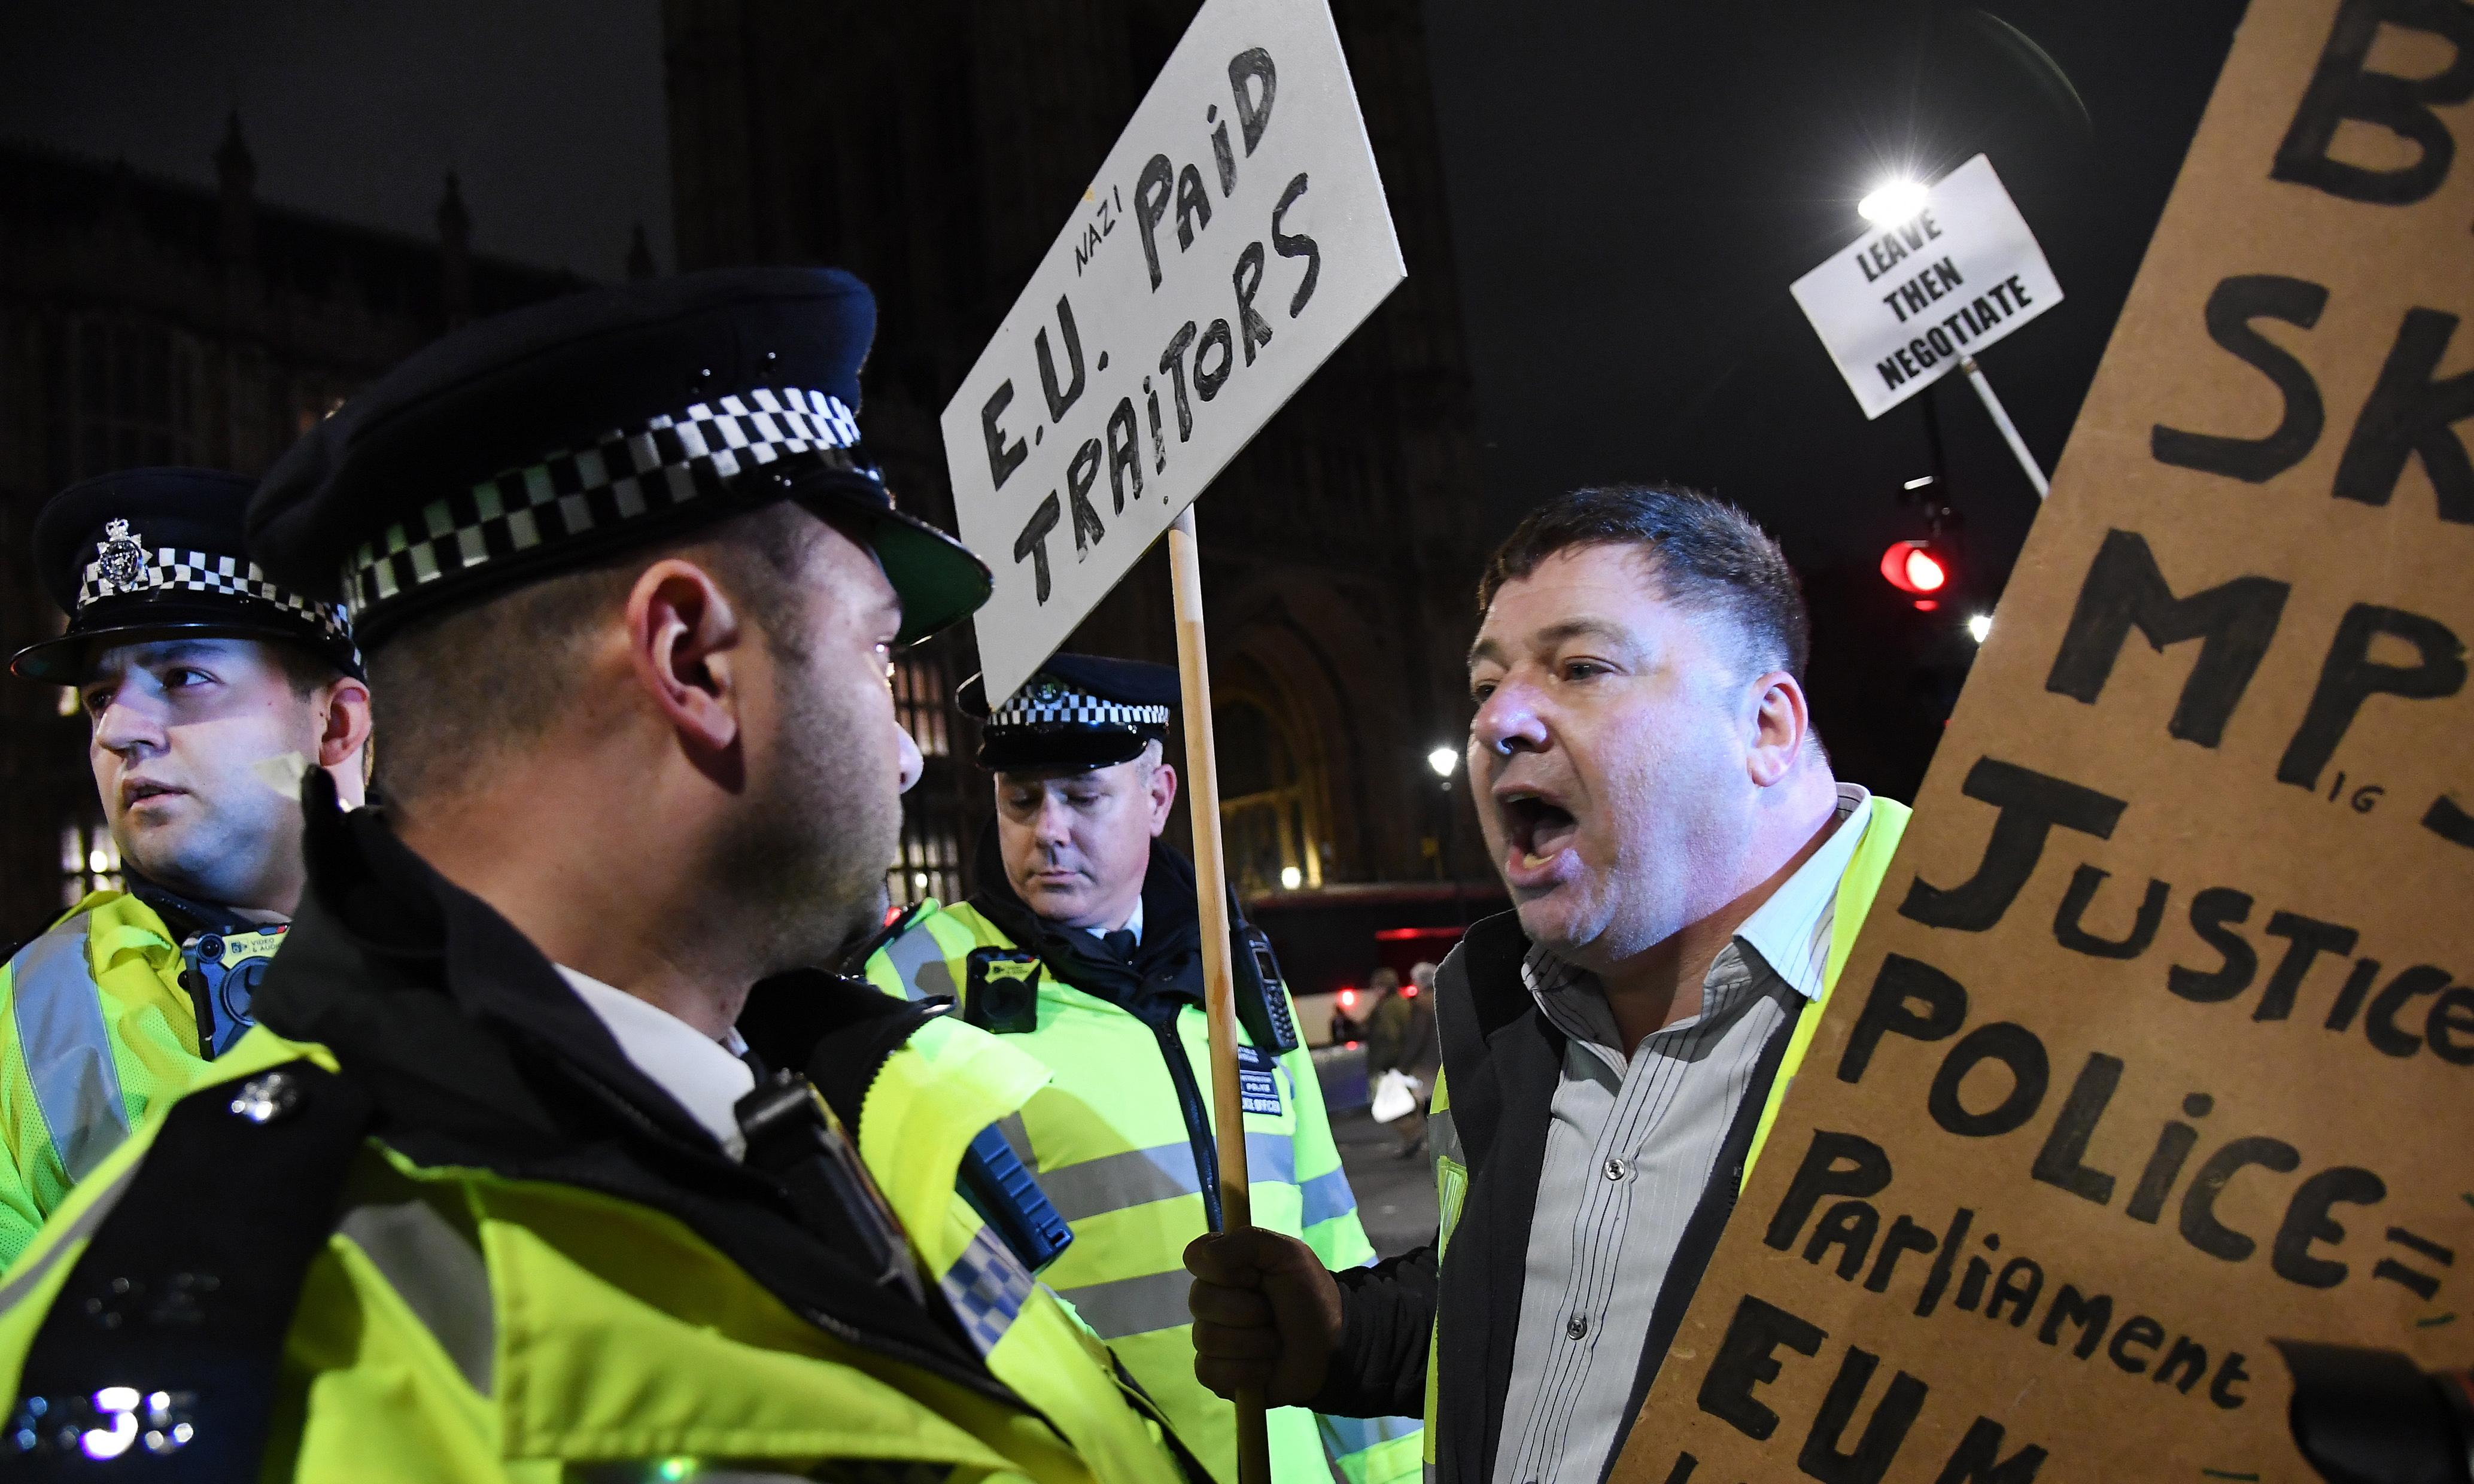 The British far right is leaderless – and all the more dangerous for it